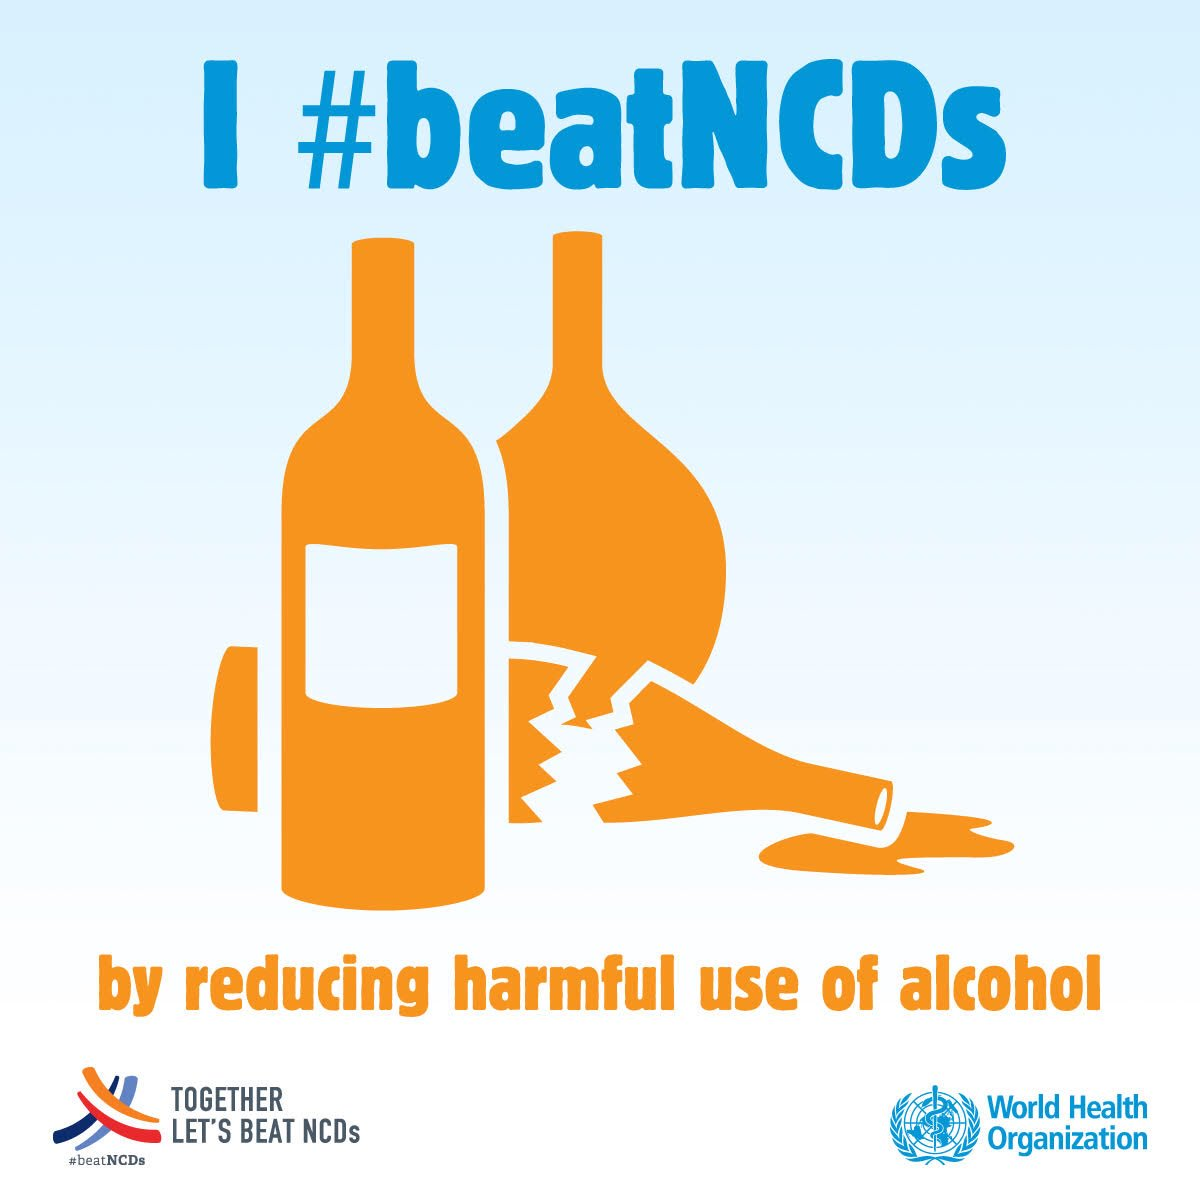 Working Together to Reduce Harmful Drinking